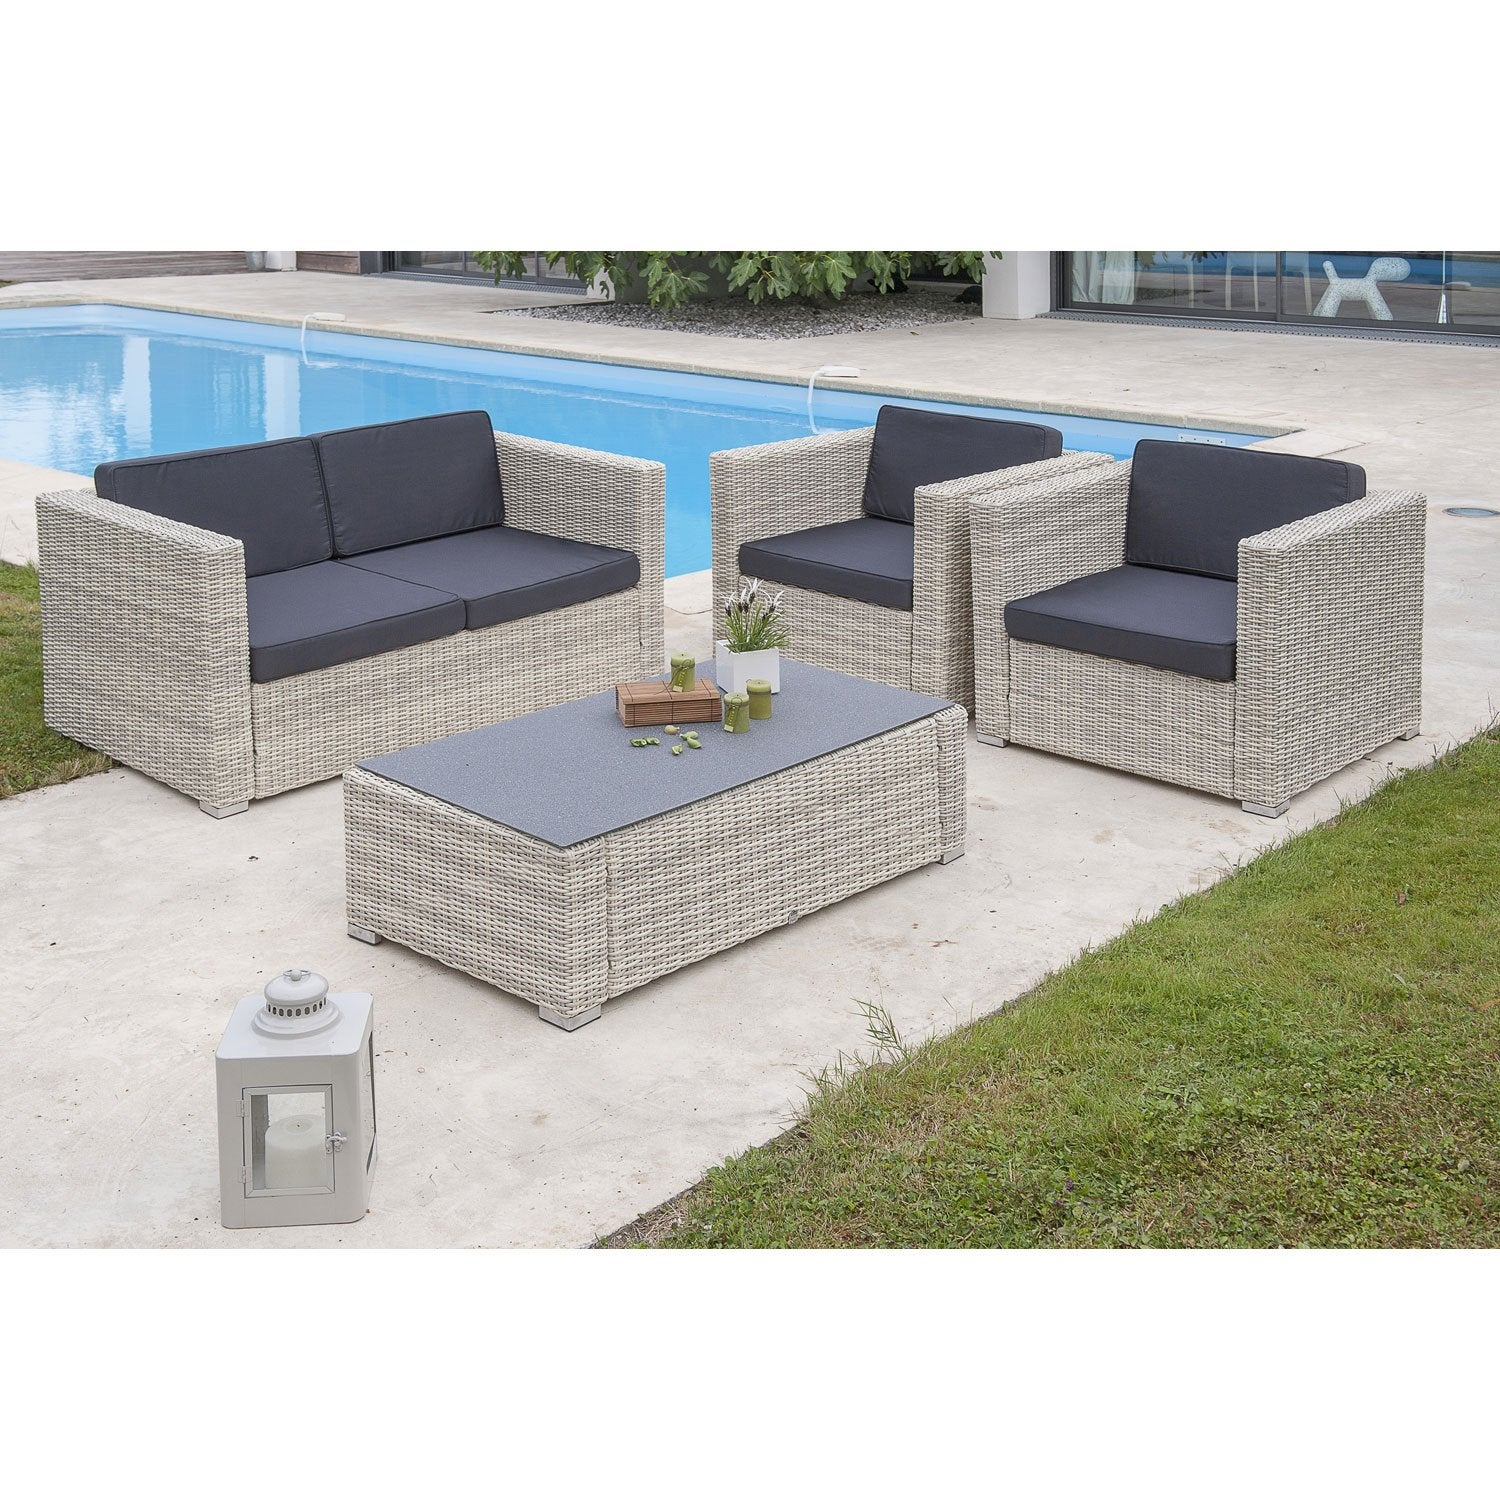 Salon bas de jardin oceane salon r sine tress e blanc table canap 2 fauteuils leroy merlin - Table salon de jardin resine tressee ...